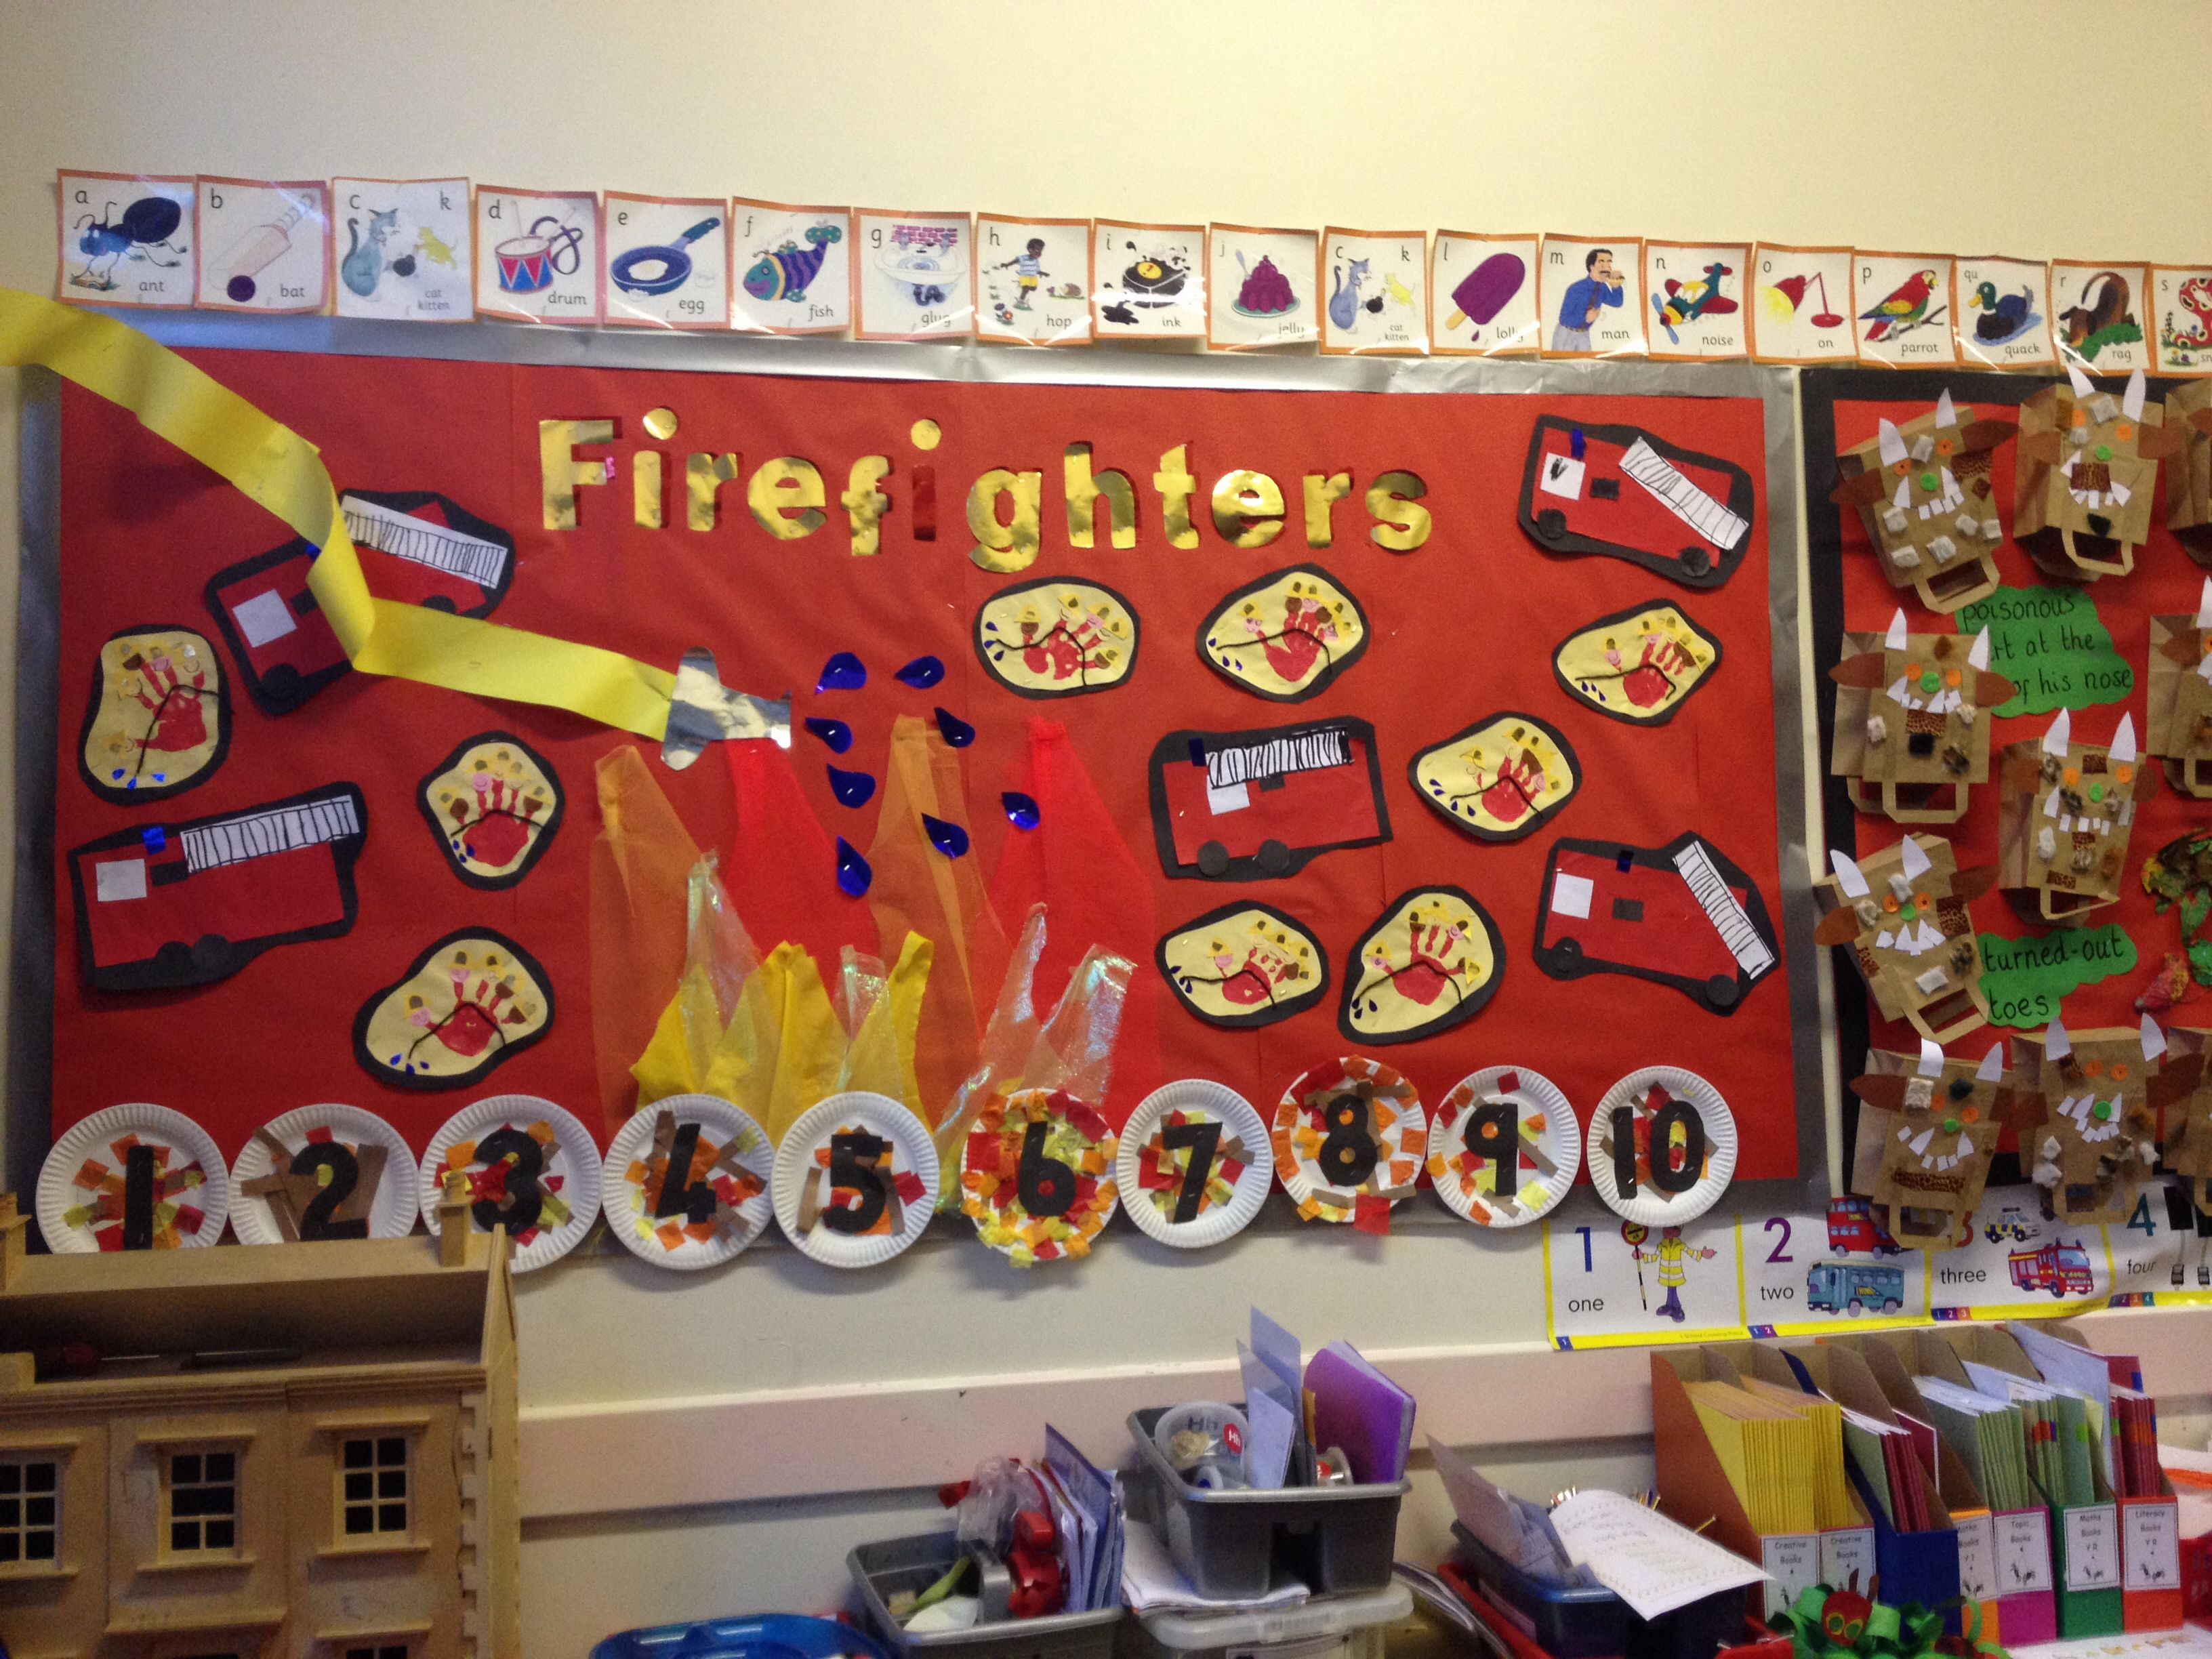 Firefighter Display Using 5 Little Firefighter Poem Art